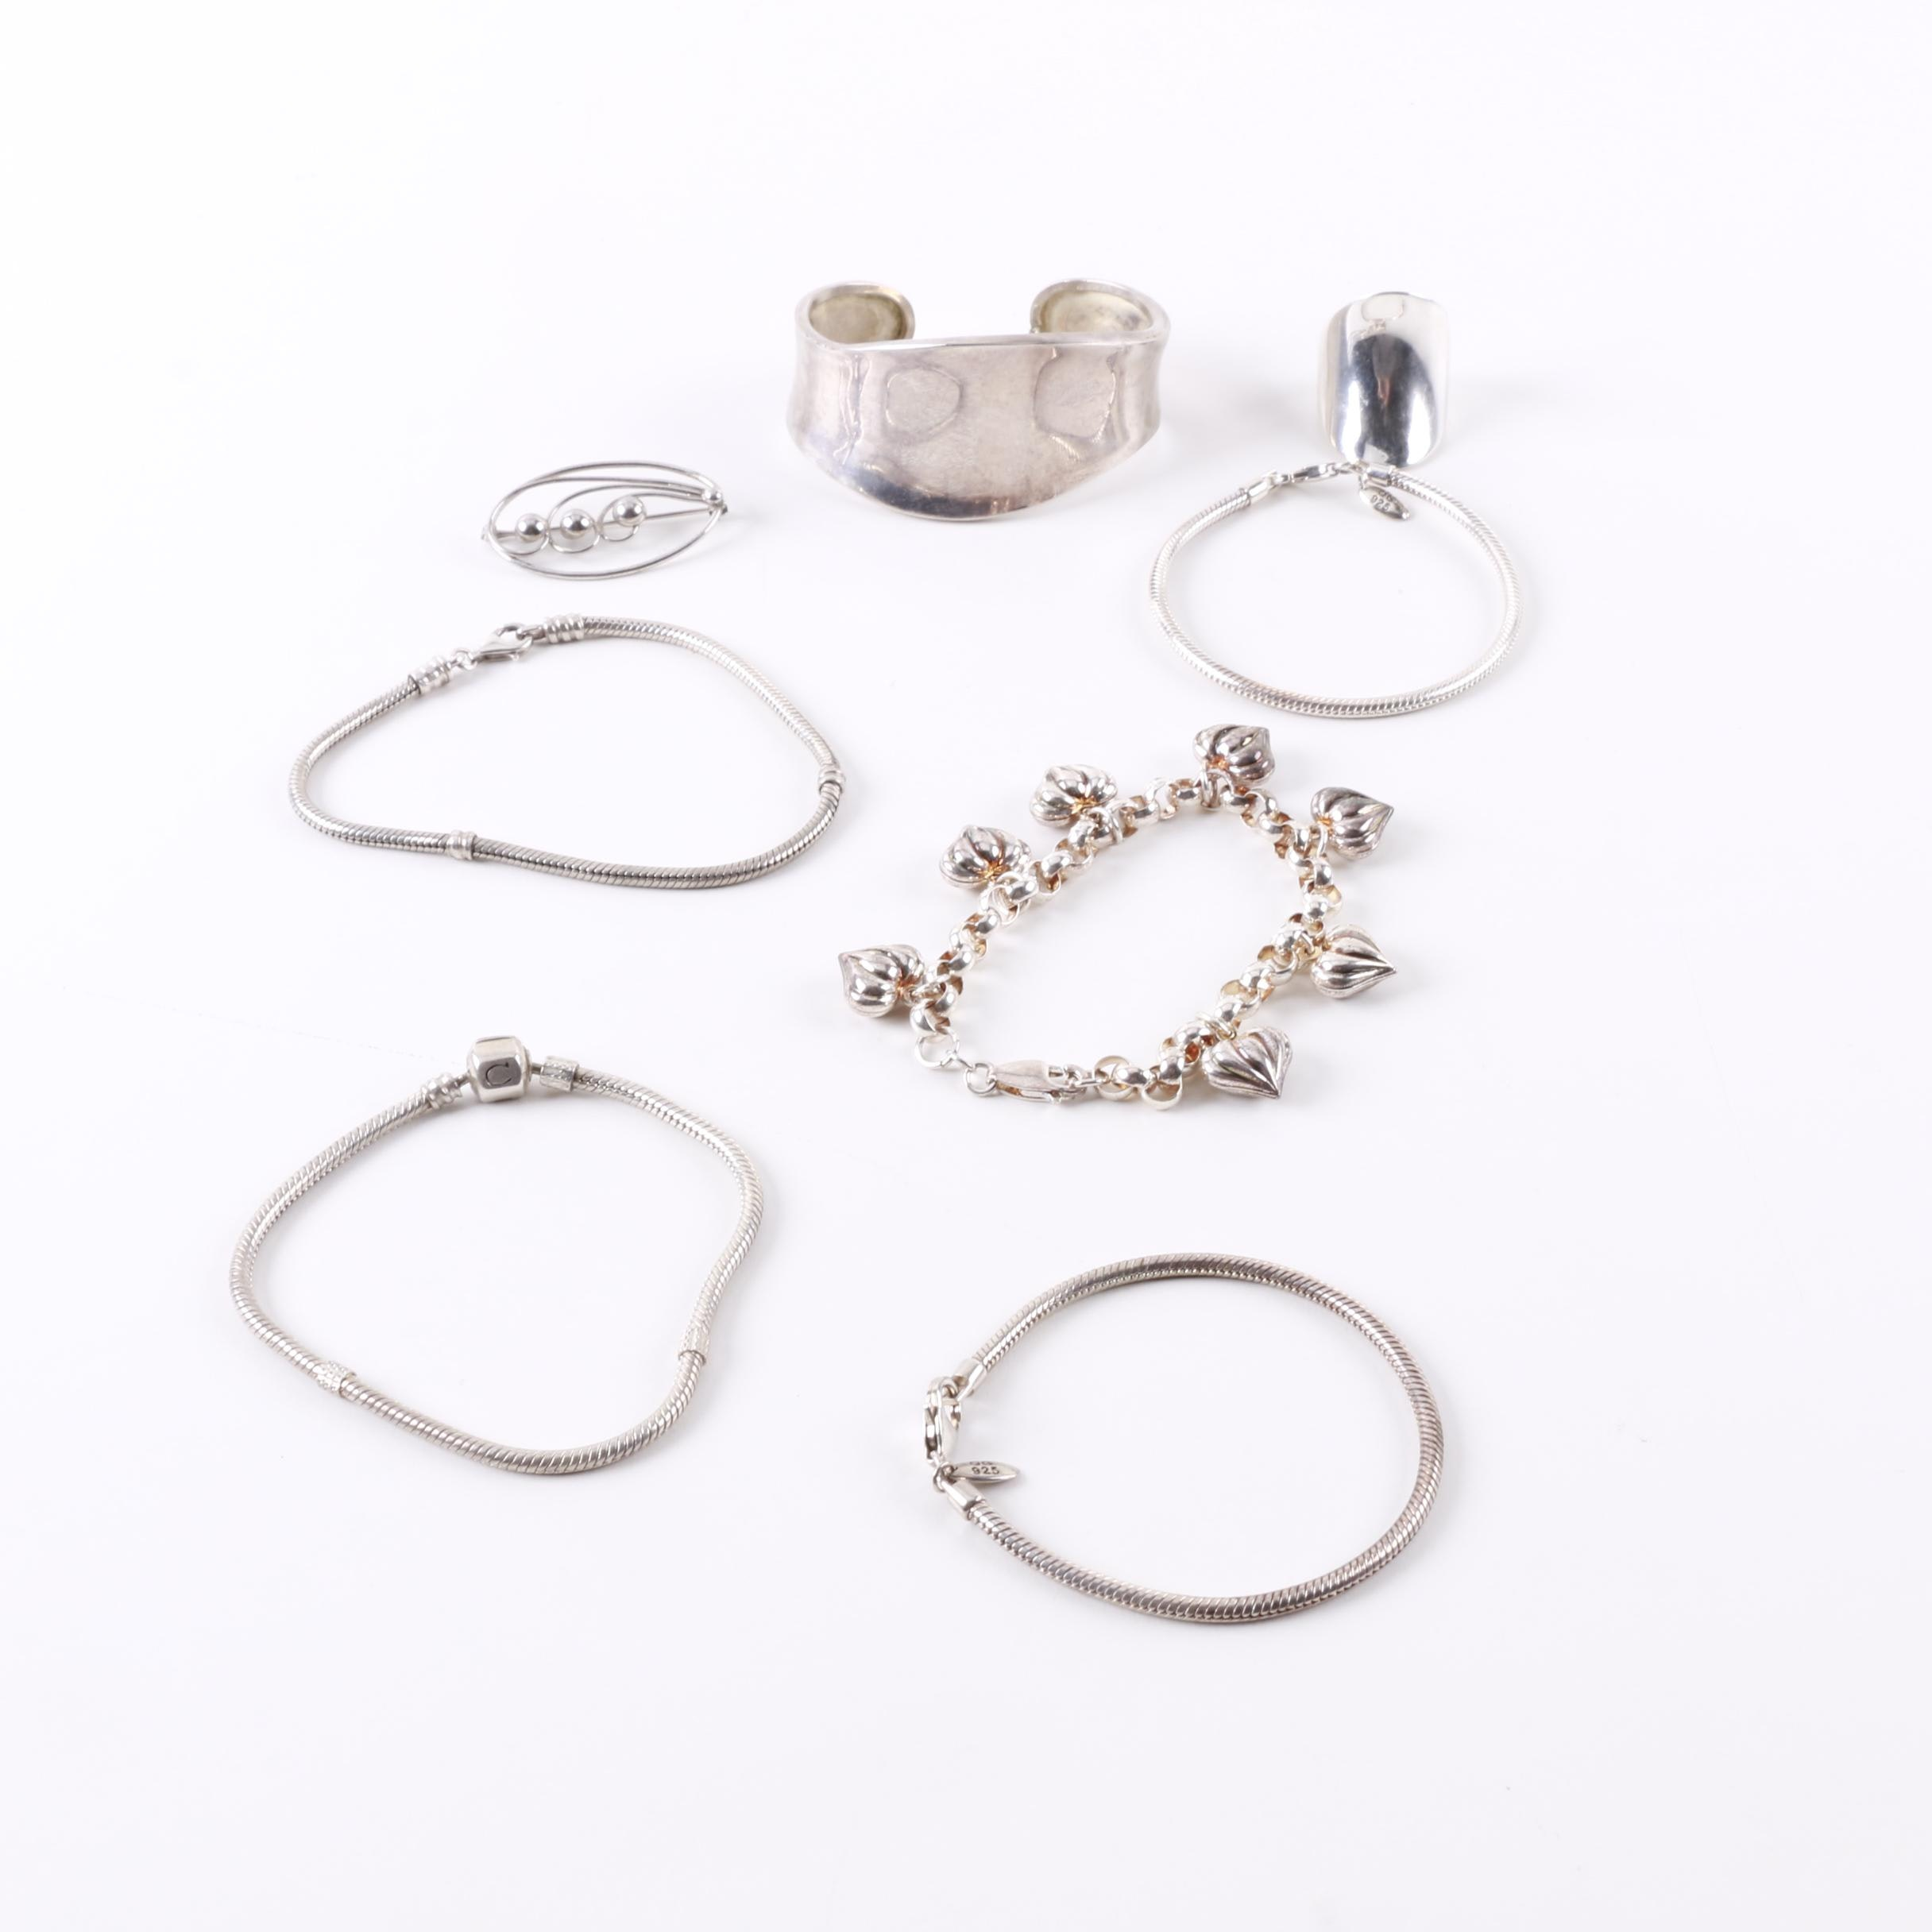 """Assortment of Sterling Silver Jewelry Including """"Reflections"""" Bracelets"""